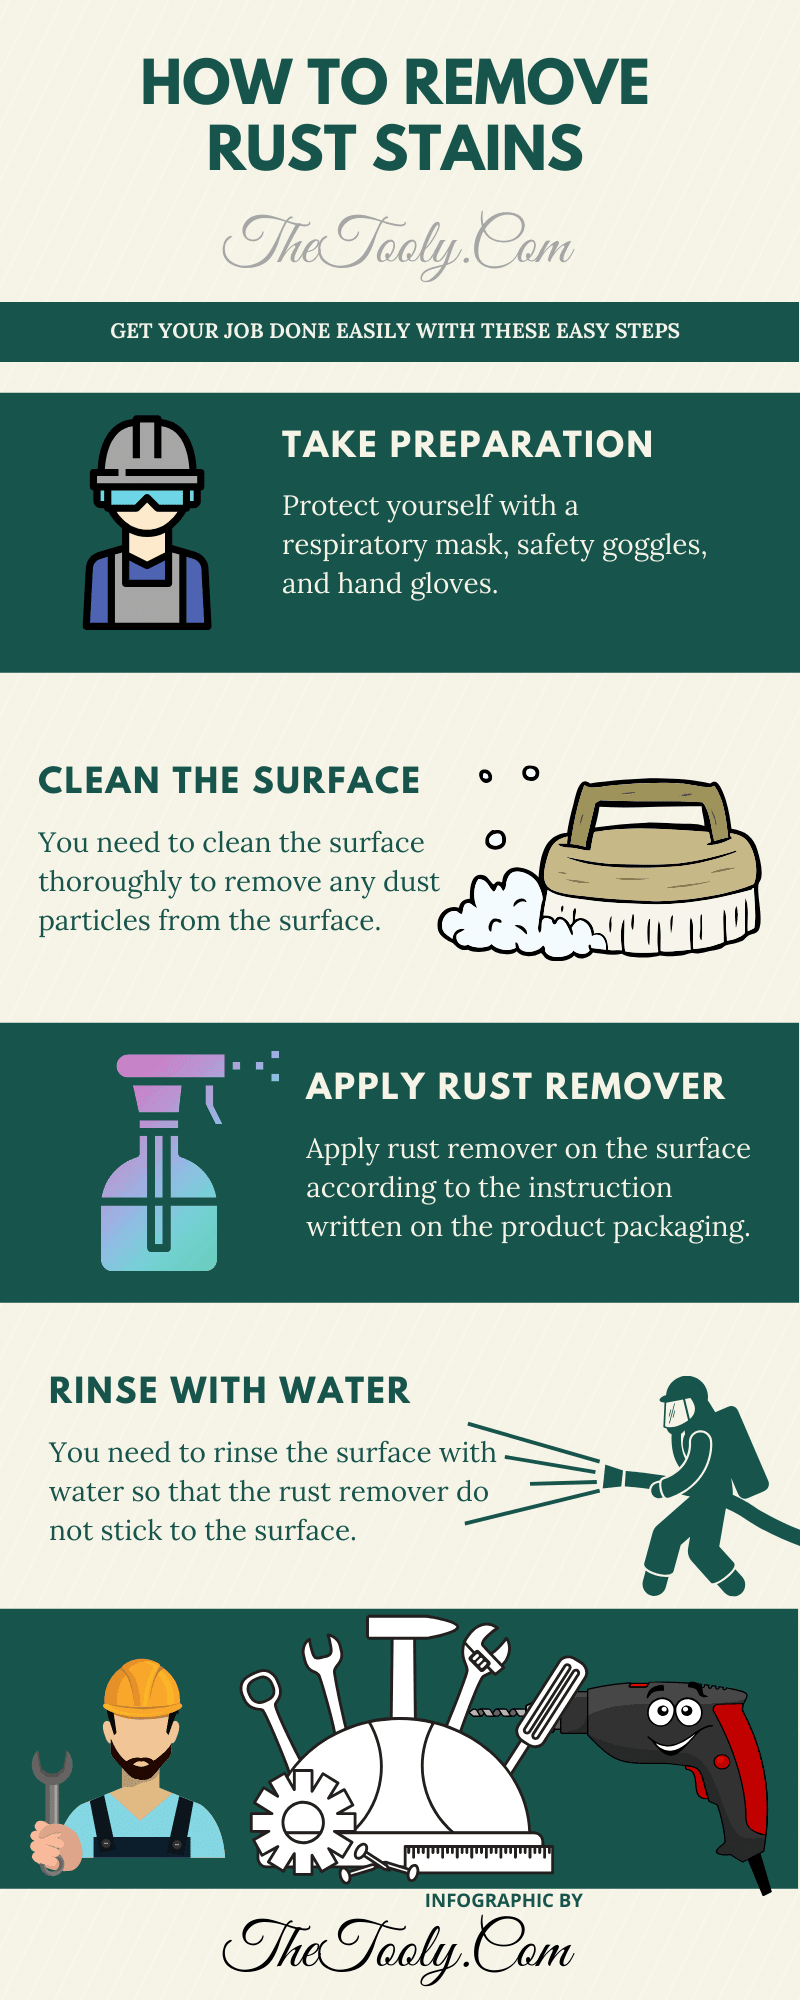 How to remove rust stains infographic